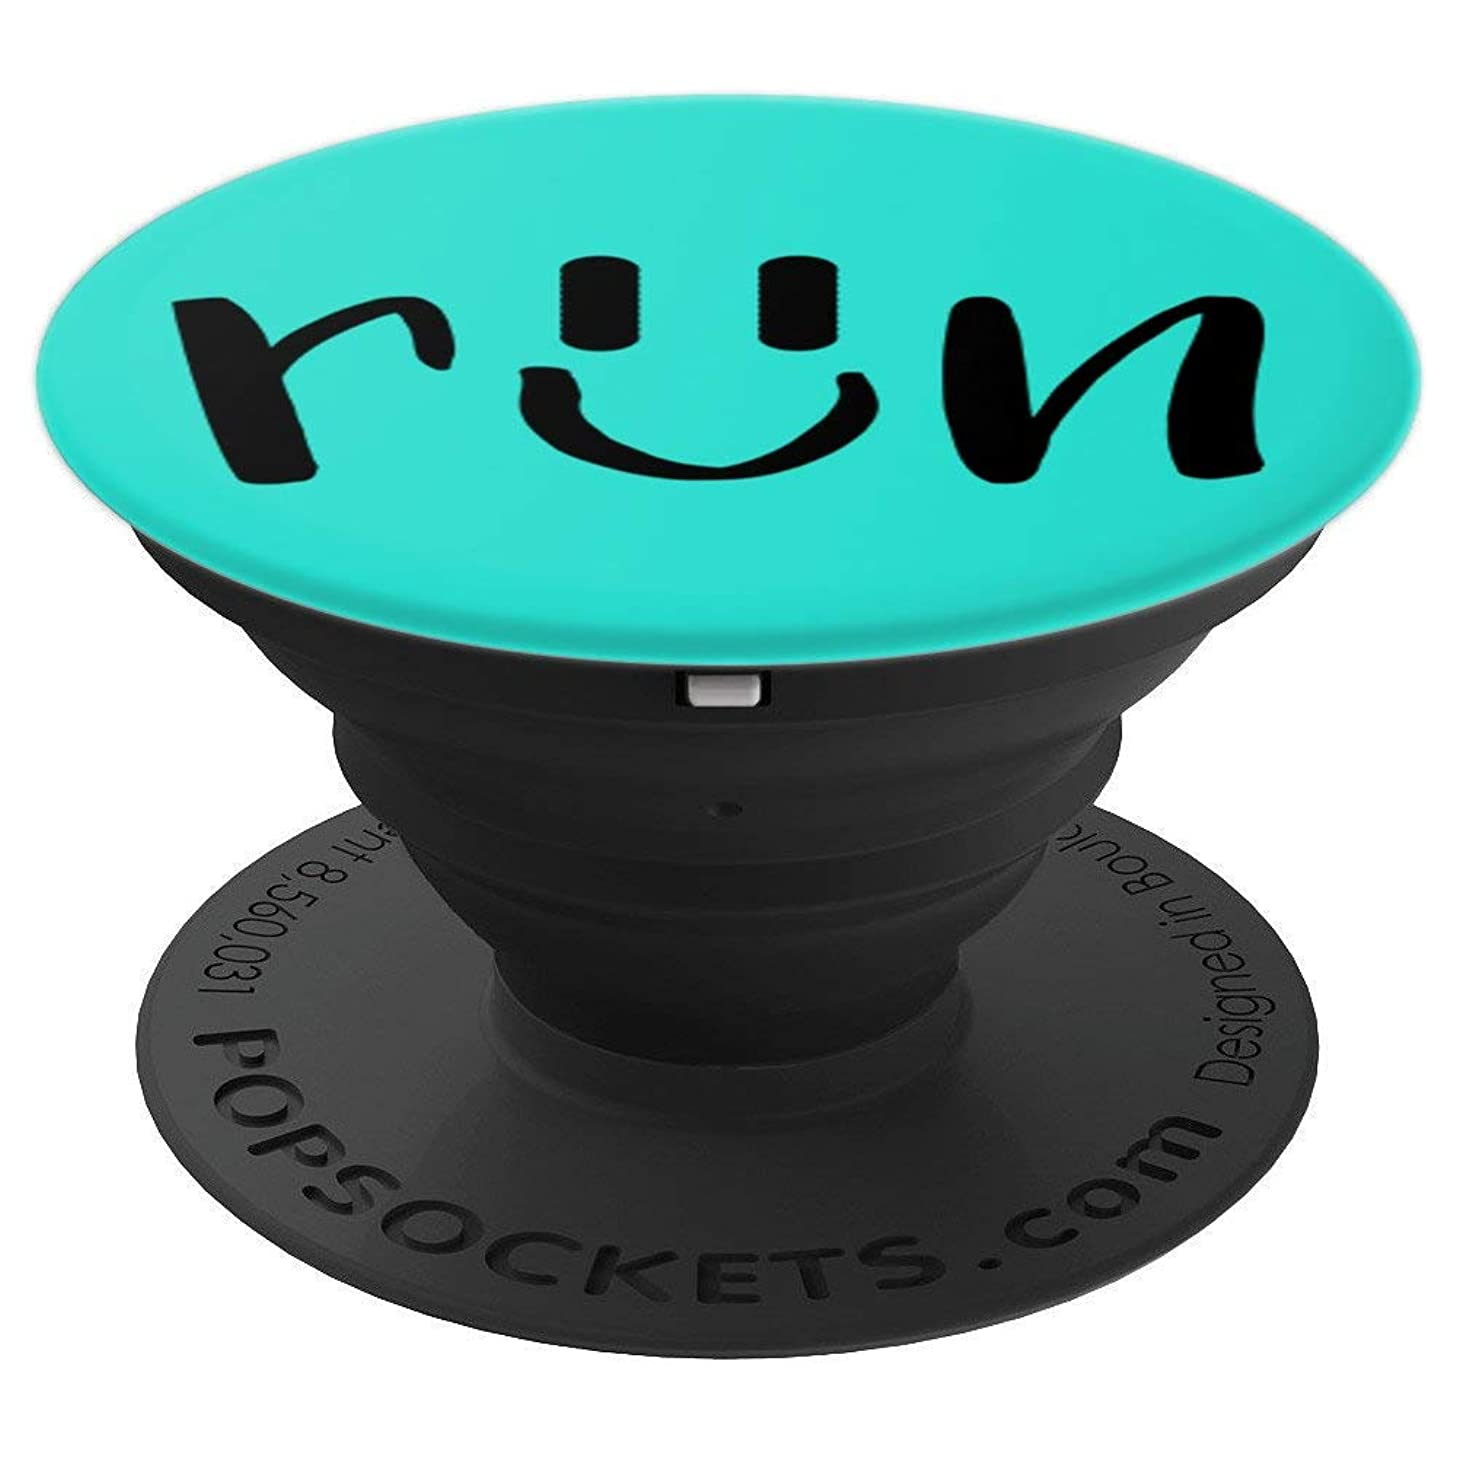 Run Smiley Face Blue/Aqua Running Design - PopSockets Grip and Stand for Phones and Tablets